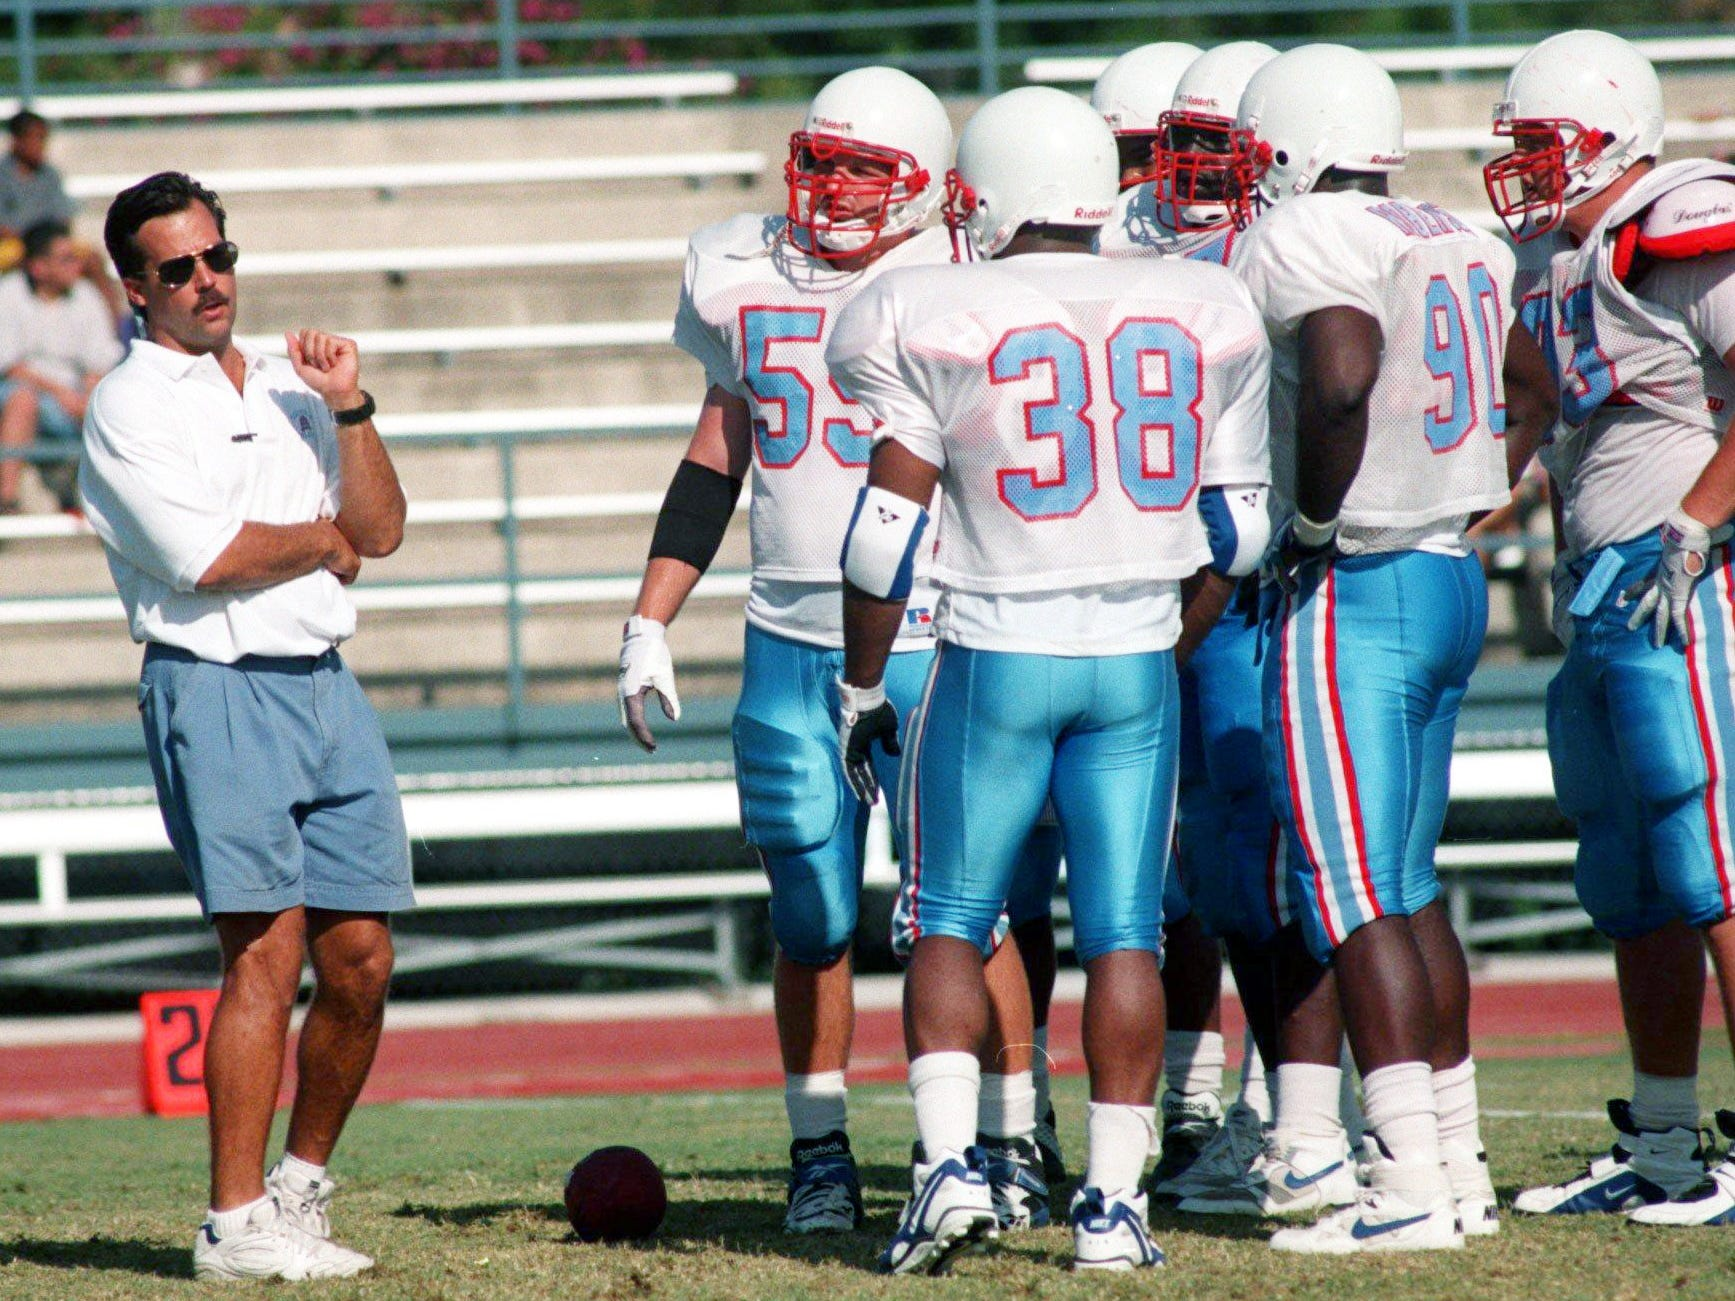 Houston Oilers head coach Jeff Fisher, left, talks with some of his players during a scrimmage on the field of Trinity University, home of their training camp in San Antonio, Texas July 26, 1996.